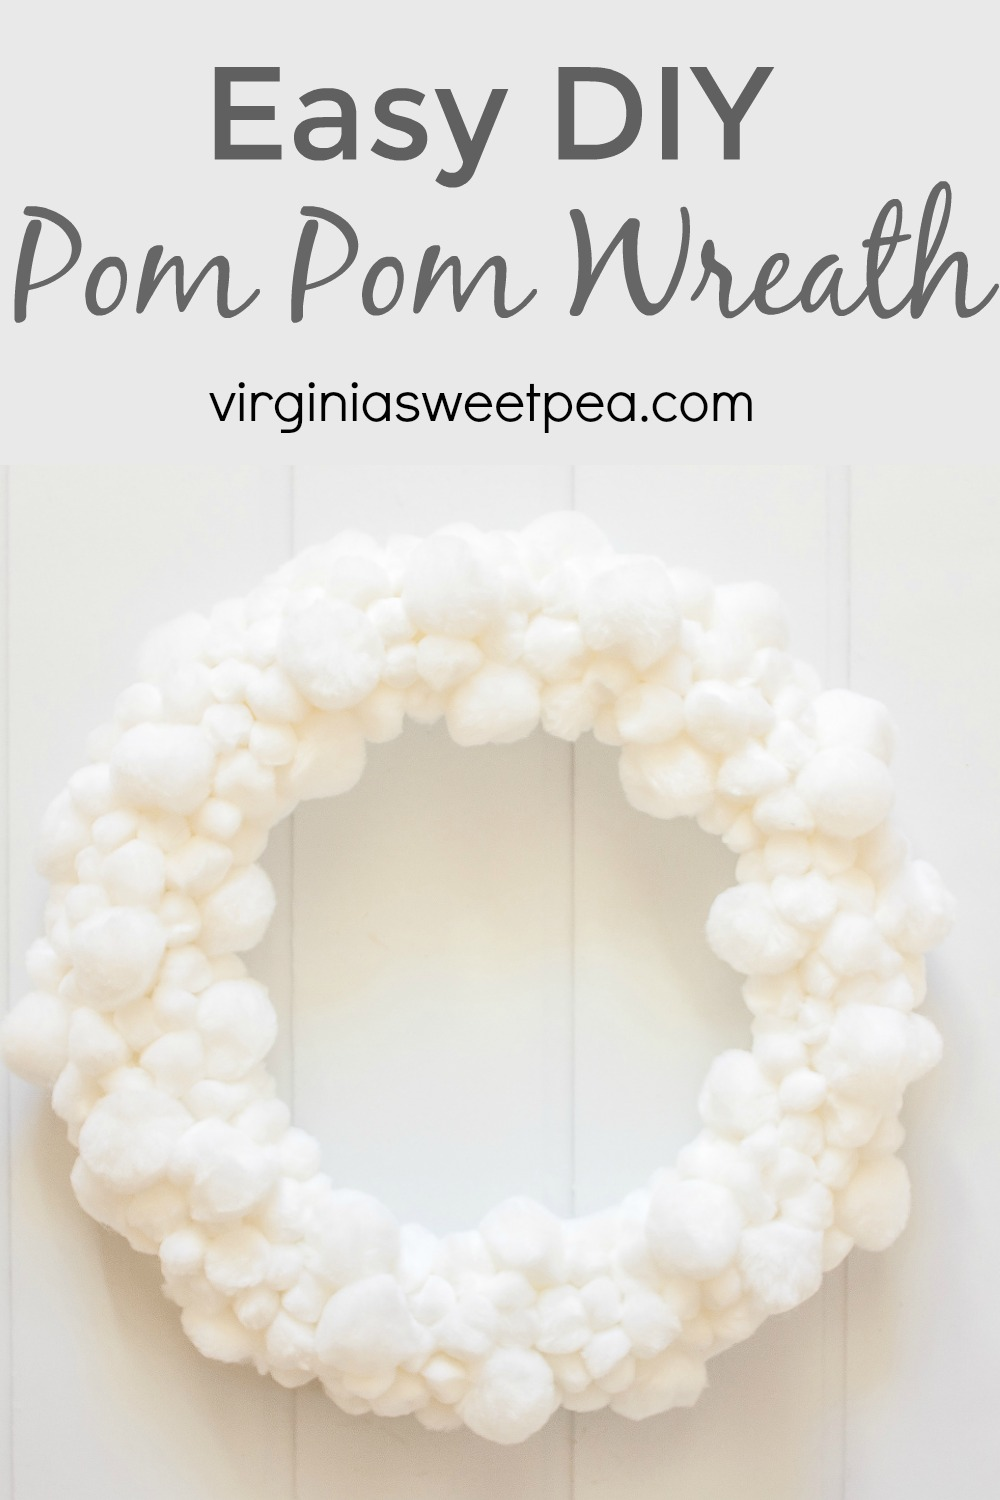 Easy DIY Pom Pom Wreath made with three different sizes of craft store pom poms